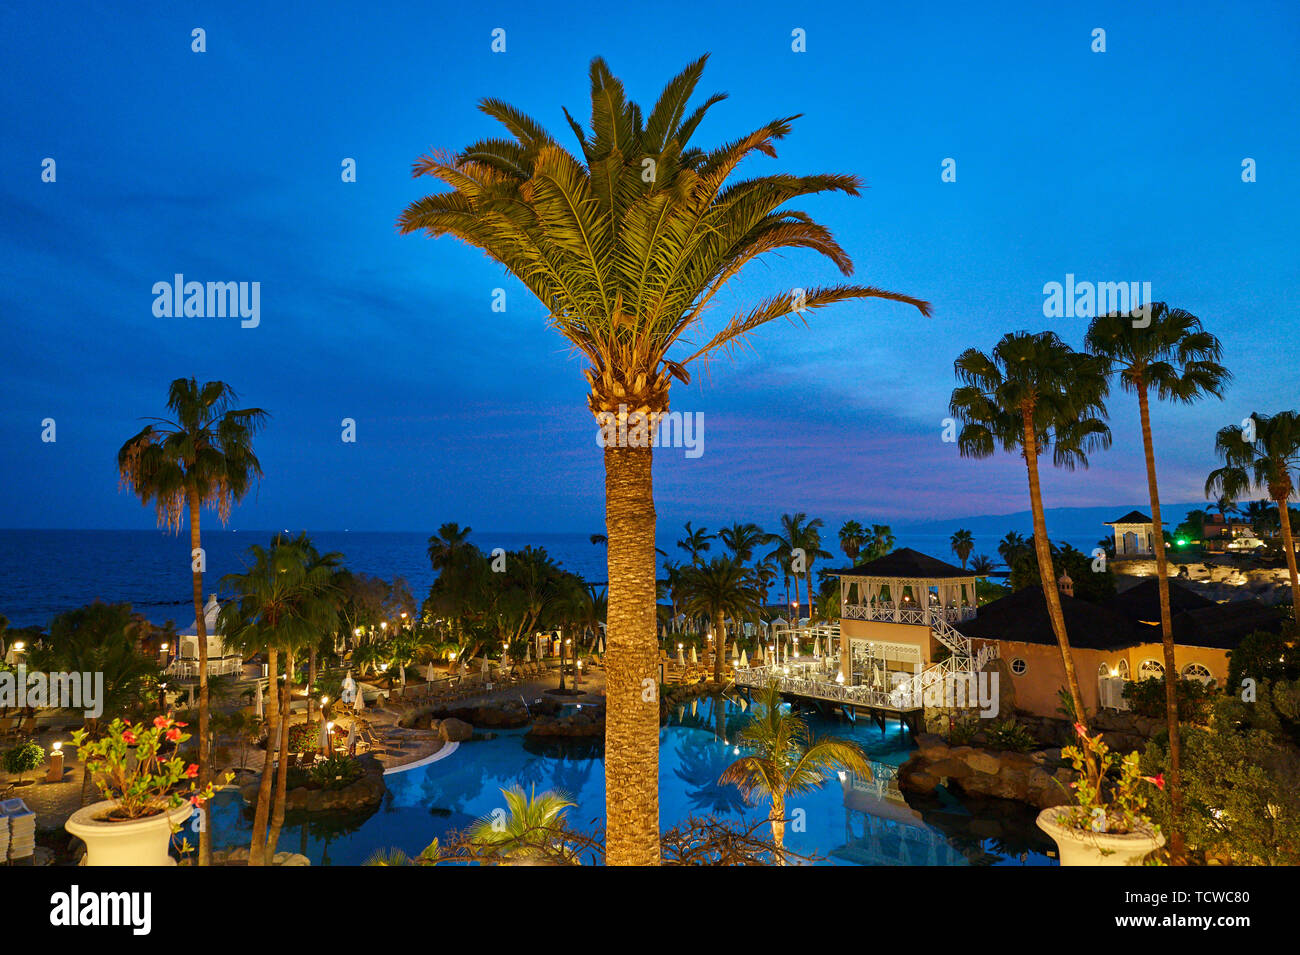 Iberostar Hotel Anthelia with swimmimg pool , beach and park with tourists sunbathing in Adeje, Tenerife, Spain, March 17, 2019. © Peter Schatz / Alam - Stock Image